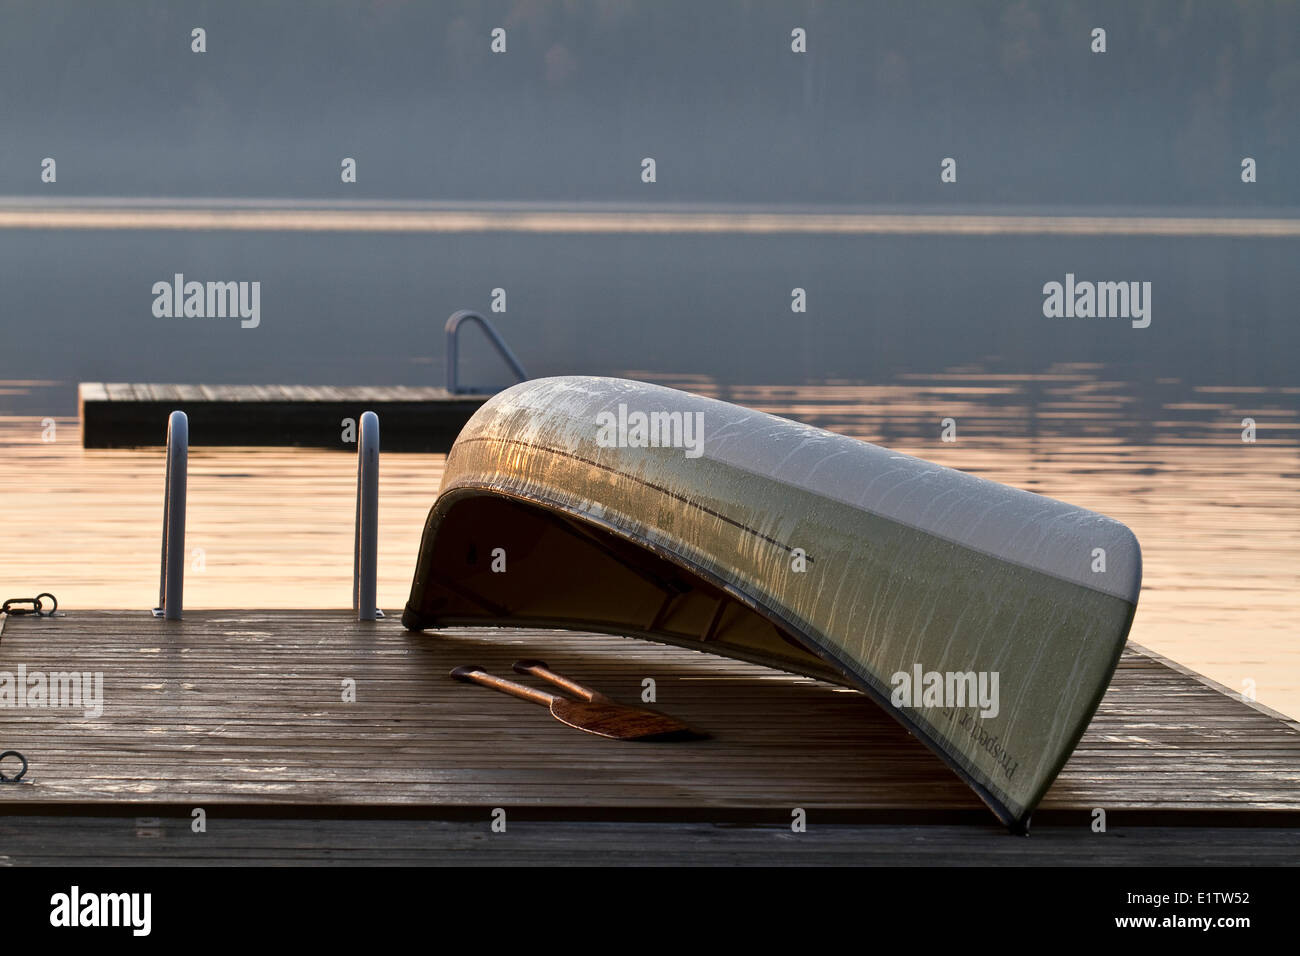 Canoe on dock in early morning, Source Lake, Algonquin Park, Ontario, Canada. - Stock Image